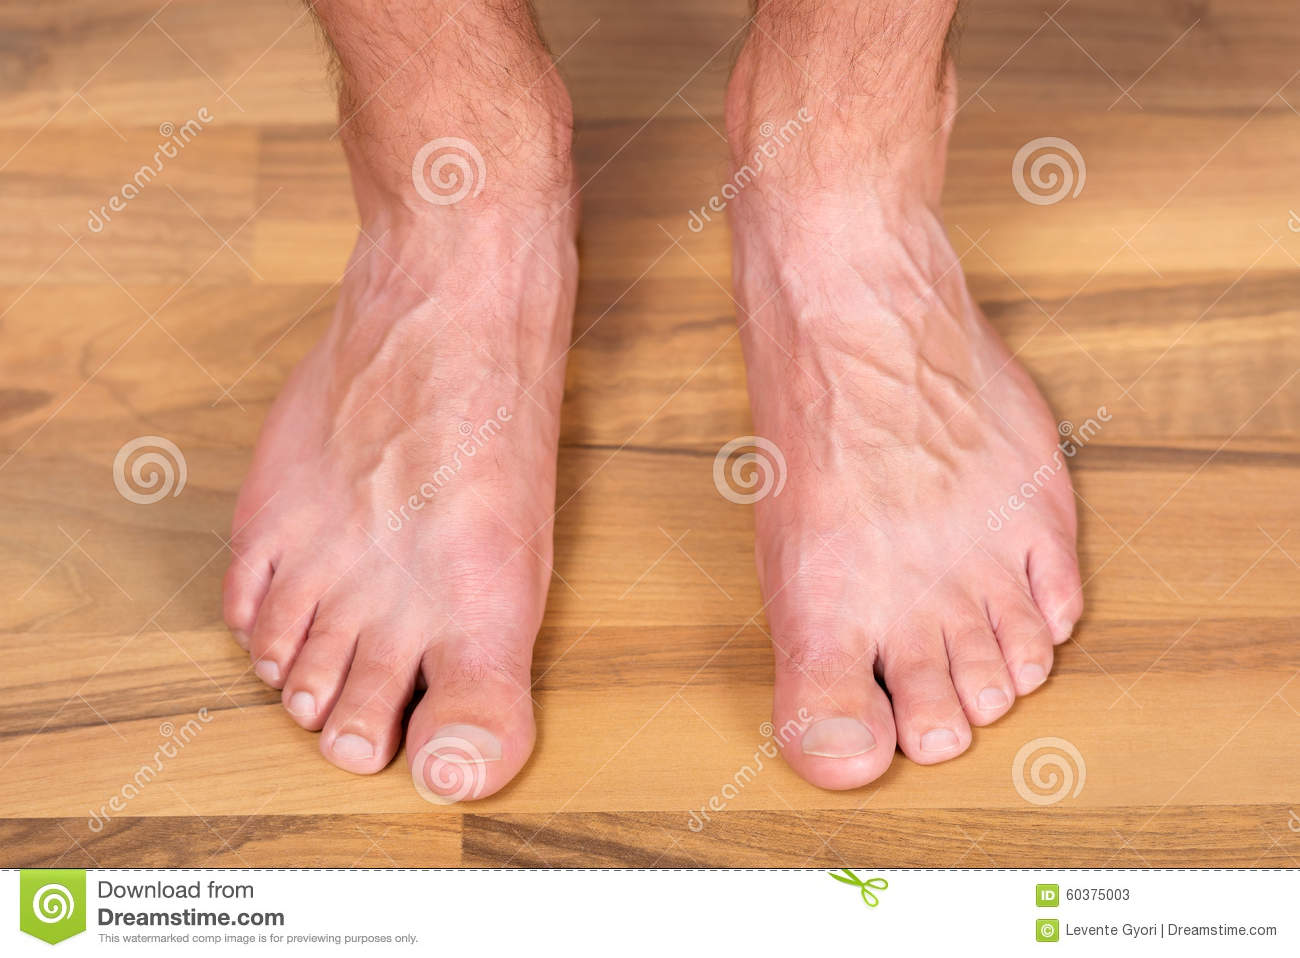 Male feet nails stock image. Image of comfortable, nails - 60375003